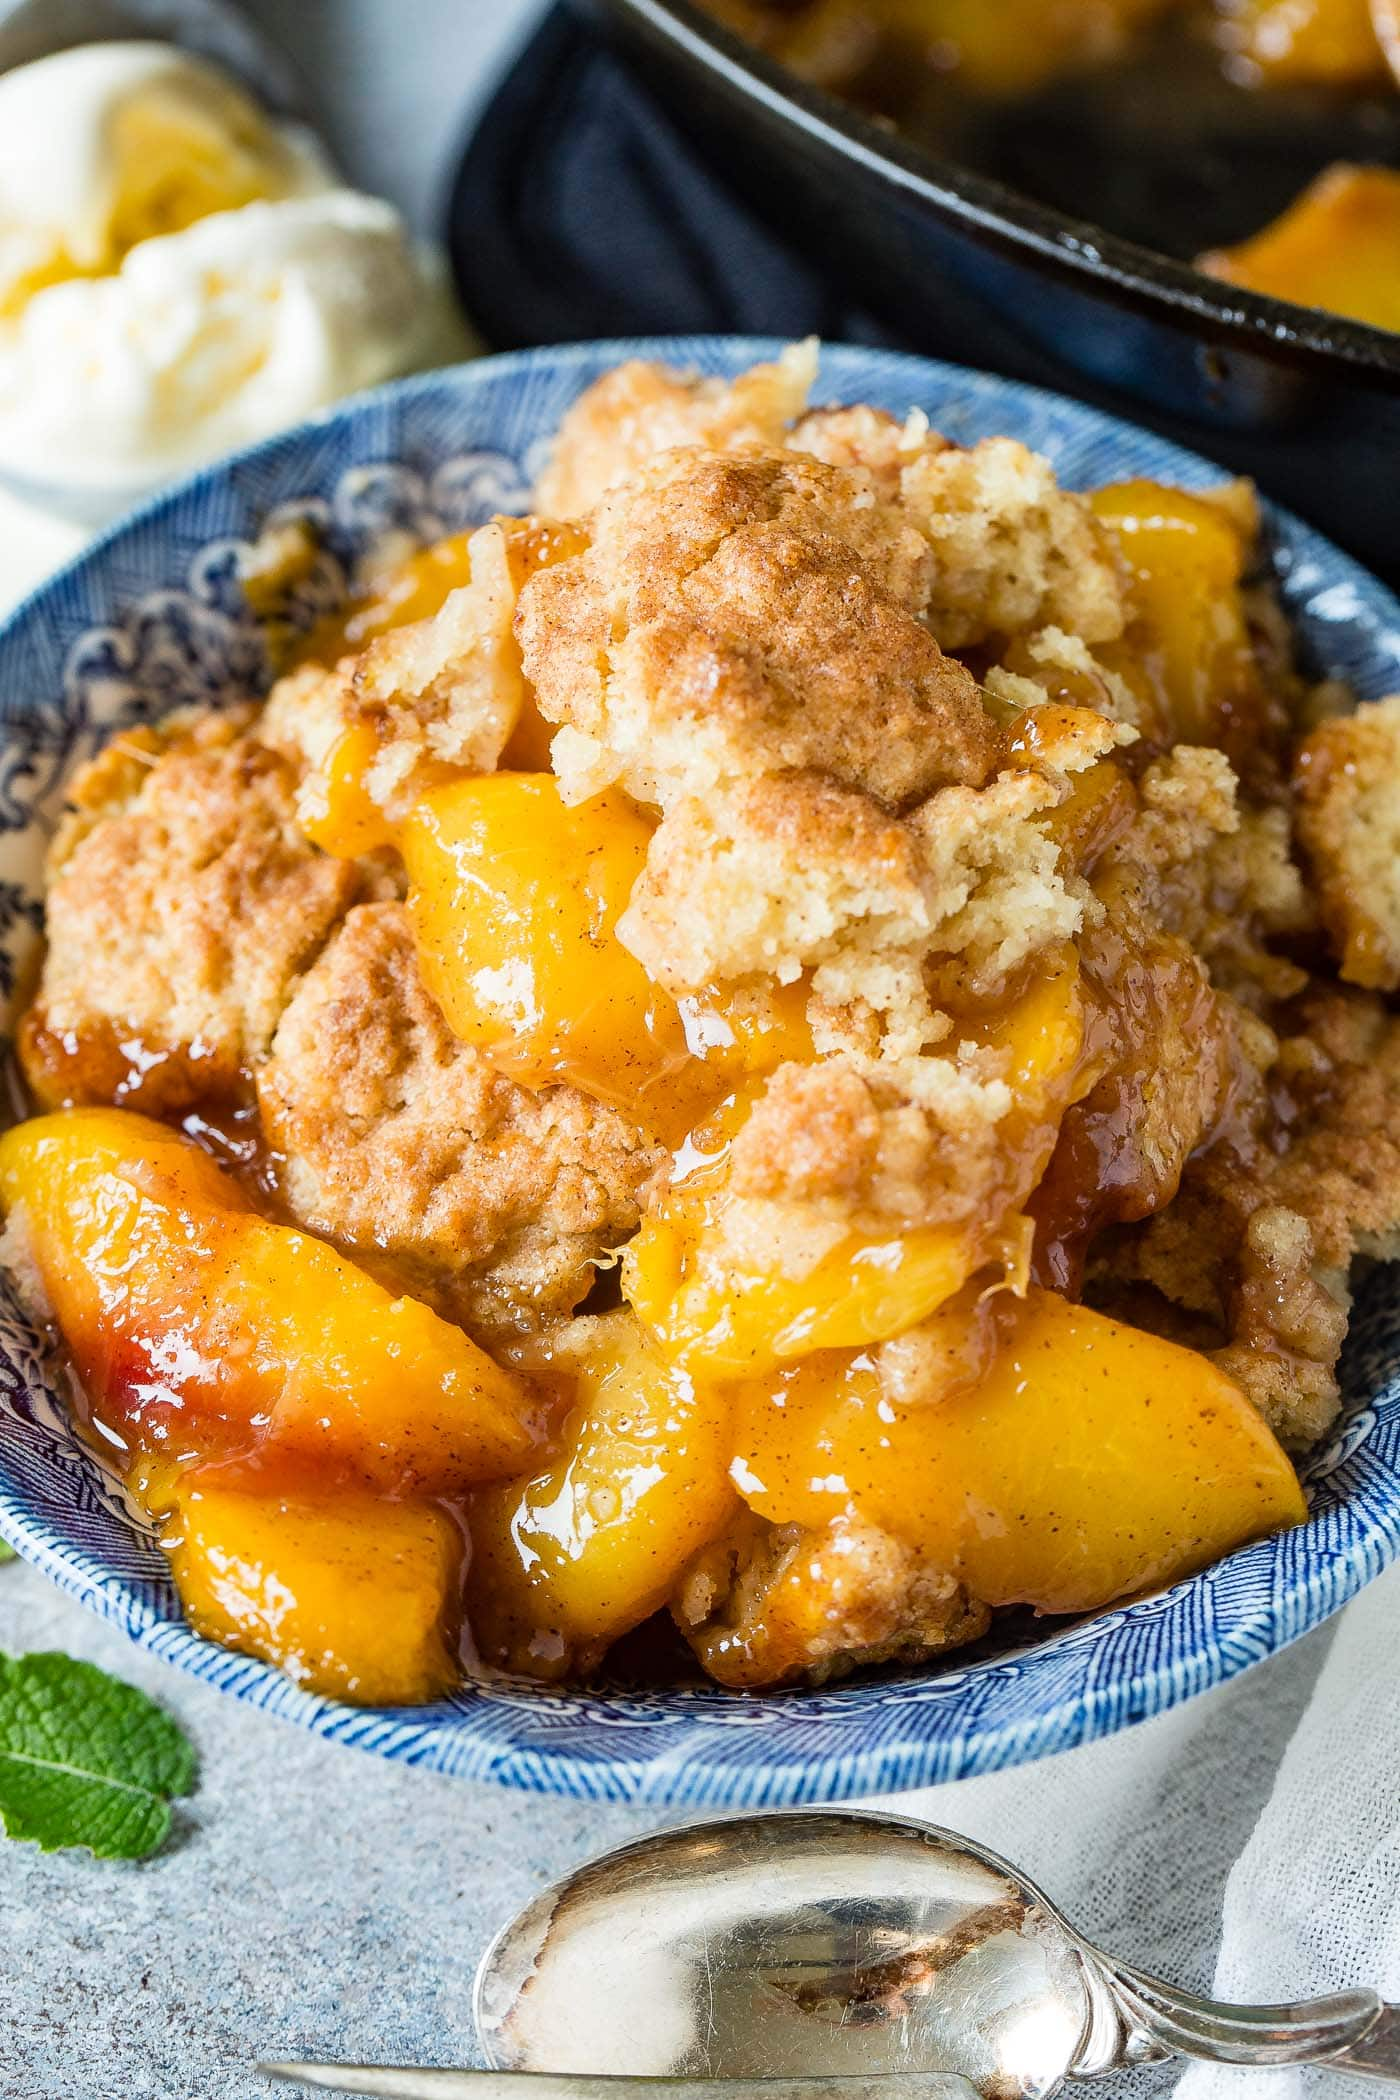 Picture of a bowl of peach cobbler with a layer of biscuits.